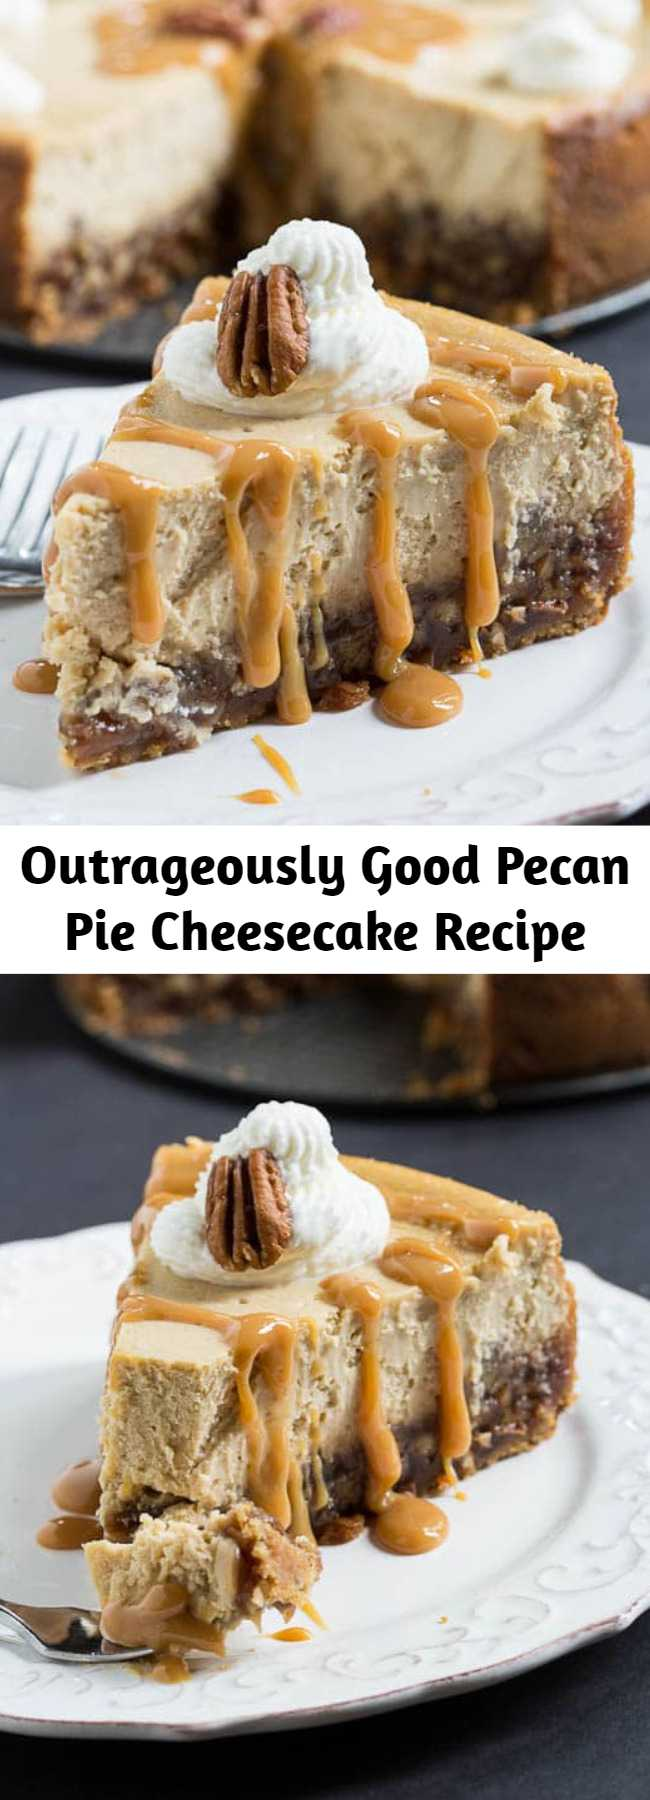 Outrageously Good Pecan Pie Cheesecake Recipe - Cheesecake and Pecan Pie together in one dessert. A truly decadent dessert with a layer of pecan pie in a vanilla wafer crust, topped by a creamy cheesecake. How could anything be better?